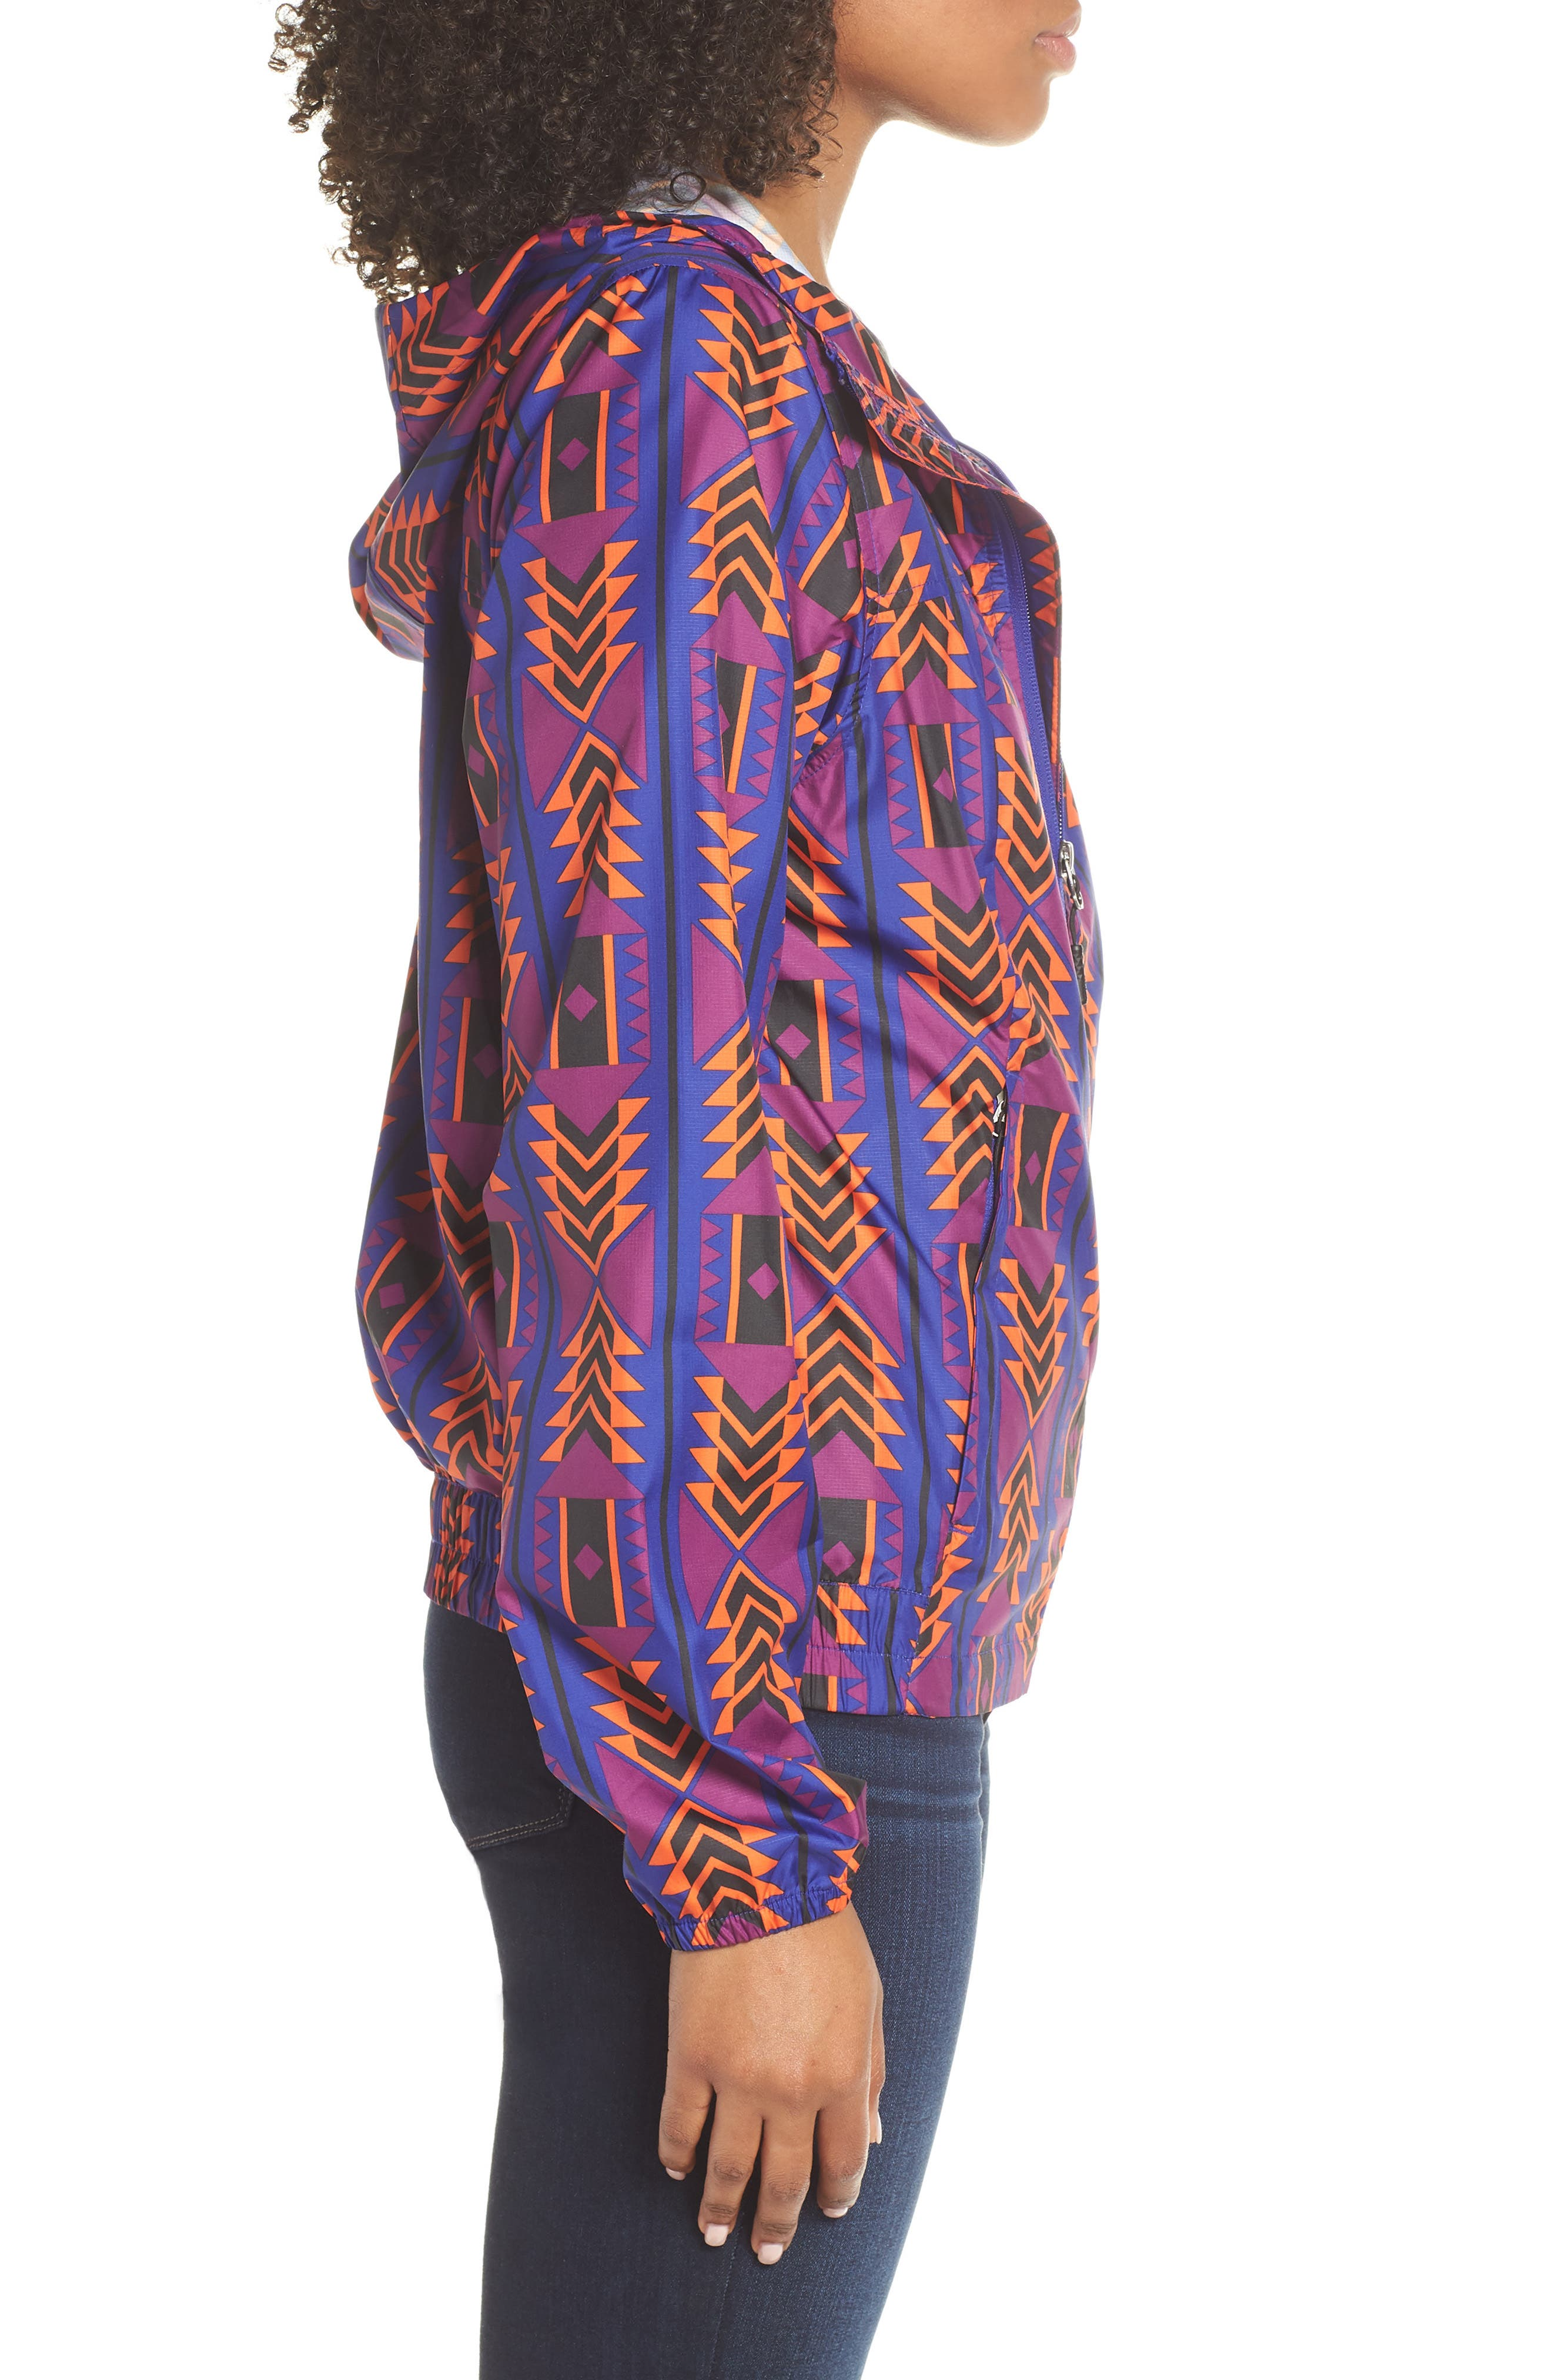 THE NORTH FACE, Print Cyclone 3.0 WindWall<sup>®</sup> Jacket, Alternate thumbnail 4, color, AZTEC BLUE 1992 RAGE PRINT